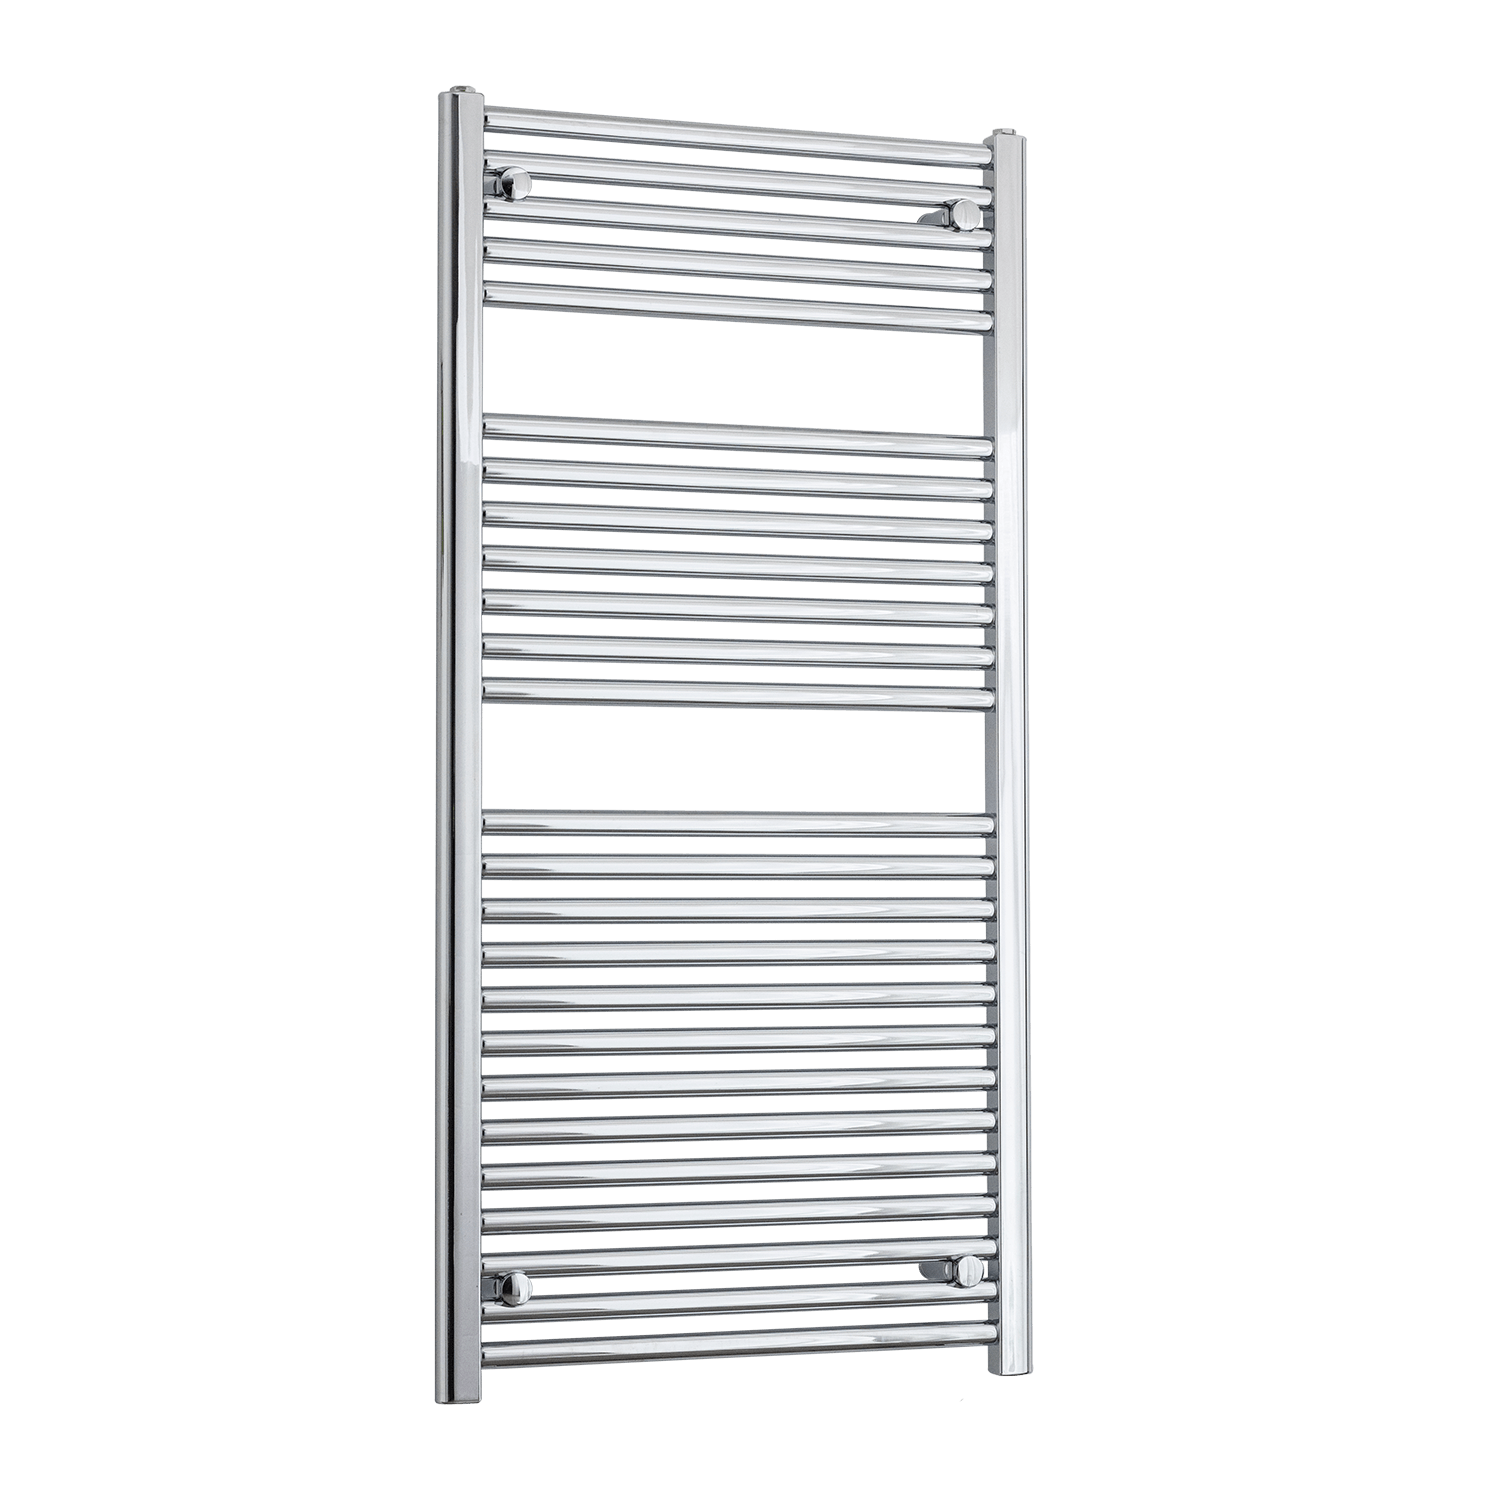 500mm Wide 1211mm High 25mm Straight Chrome Heated Towel Rail Radiator HTR,Towel Rail Only